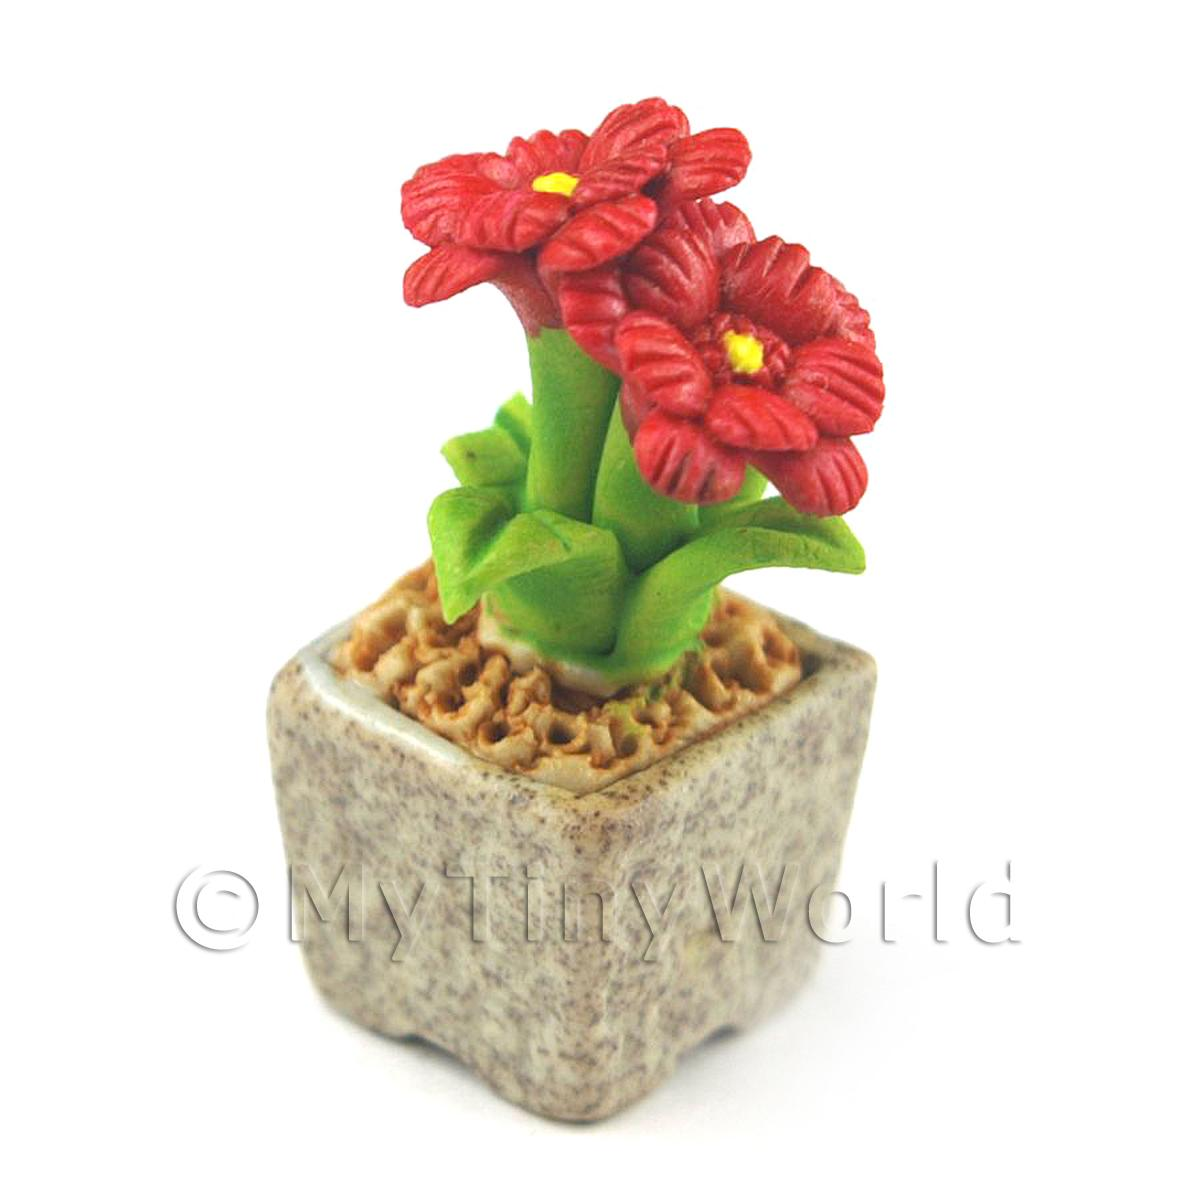 Miniature Handmade Red Coloured Ceramic Flower (CFR9)